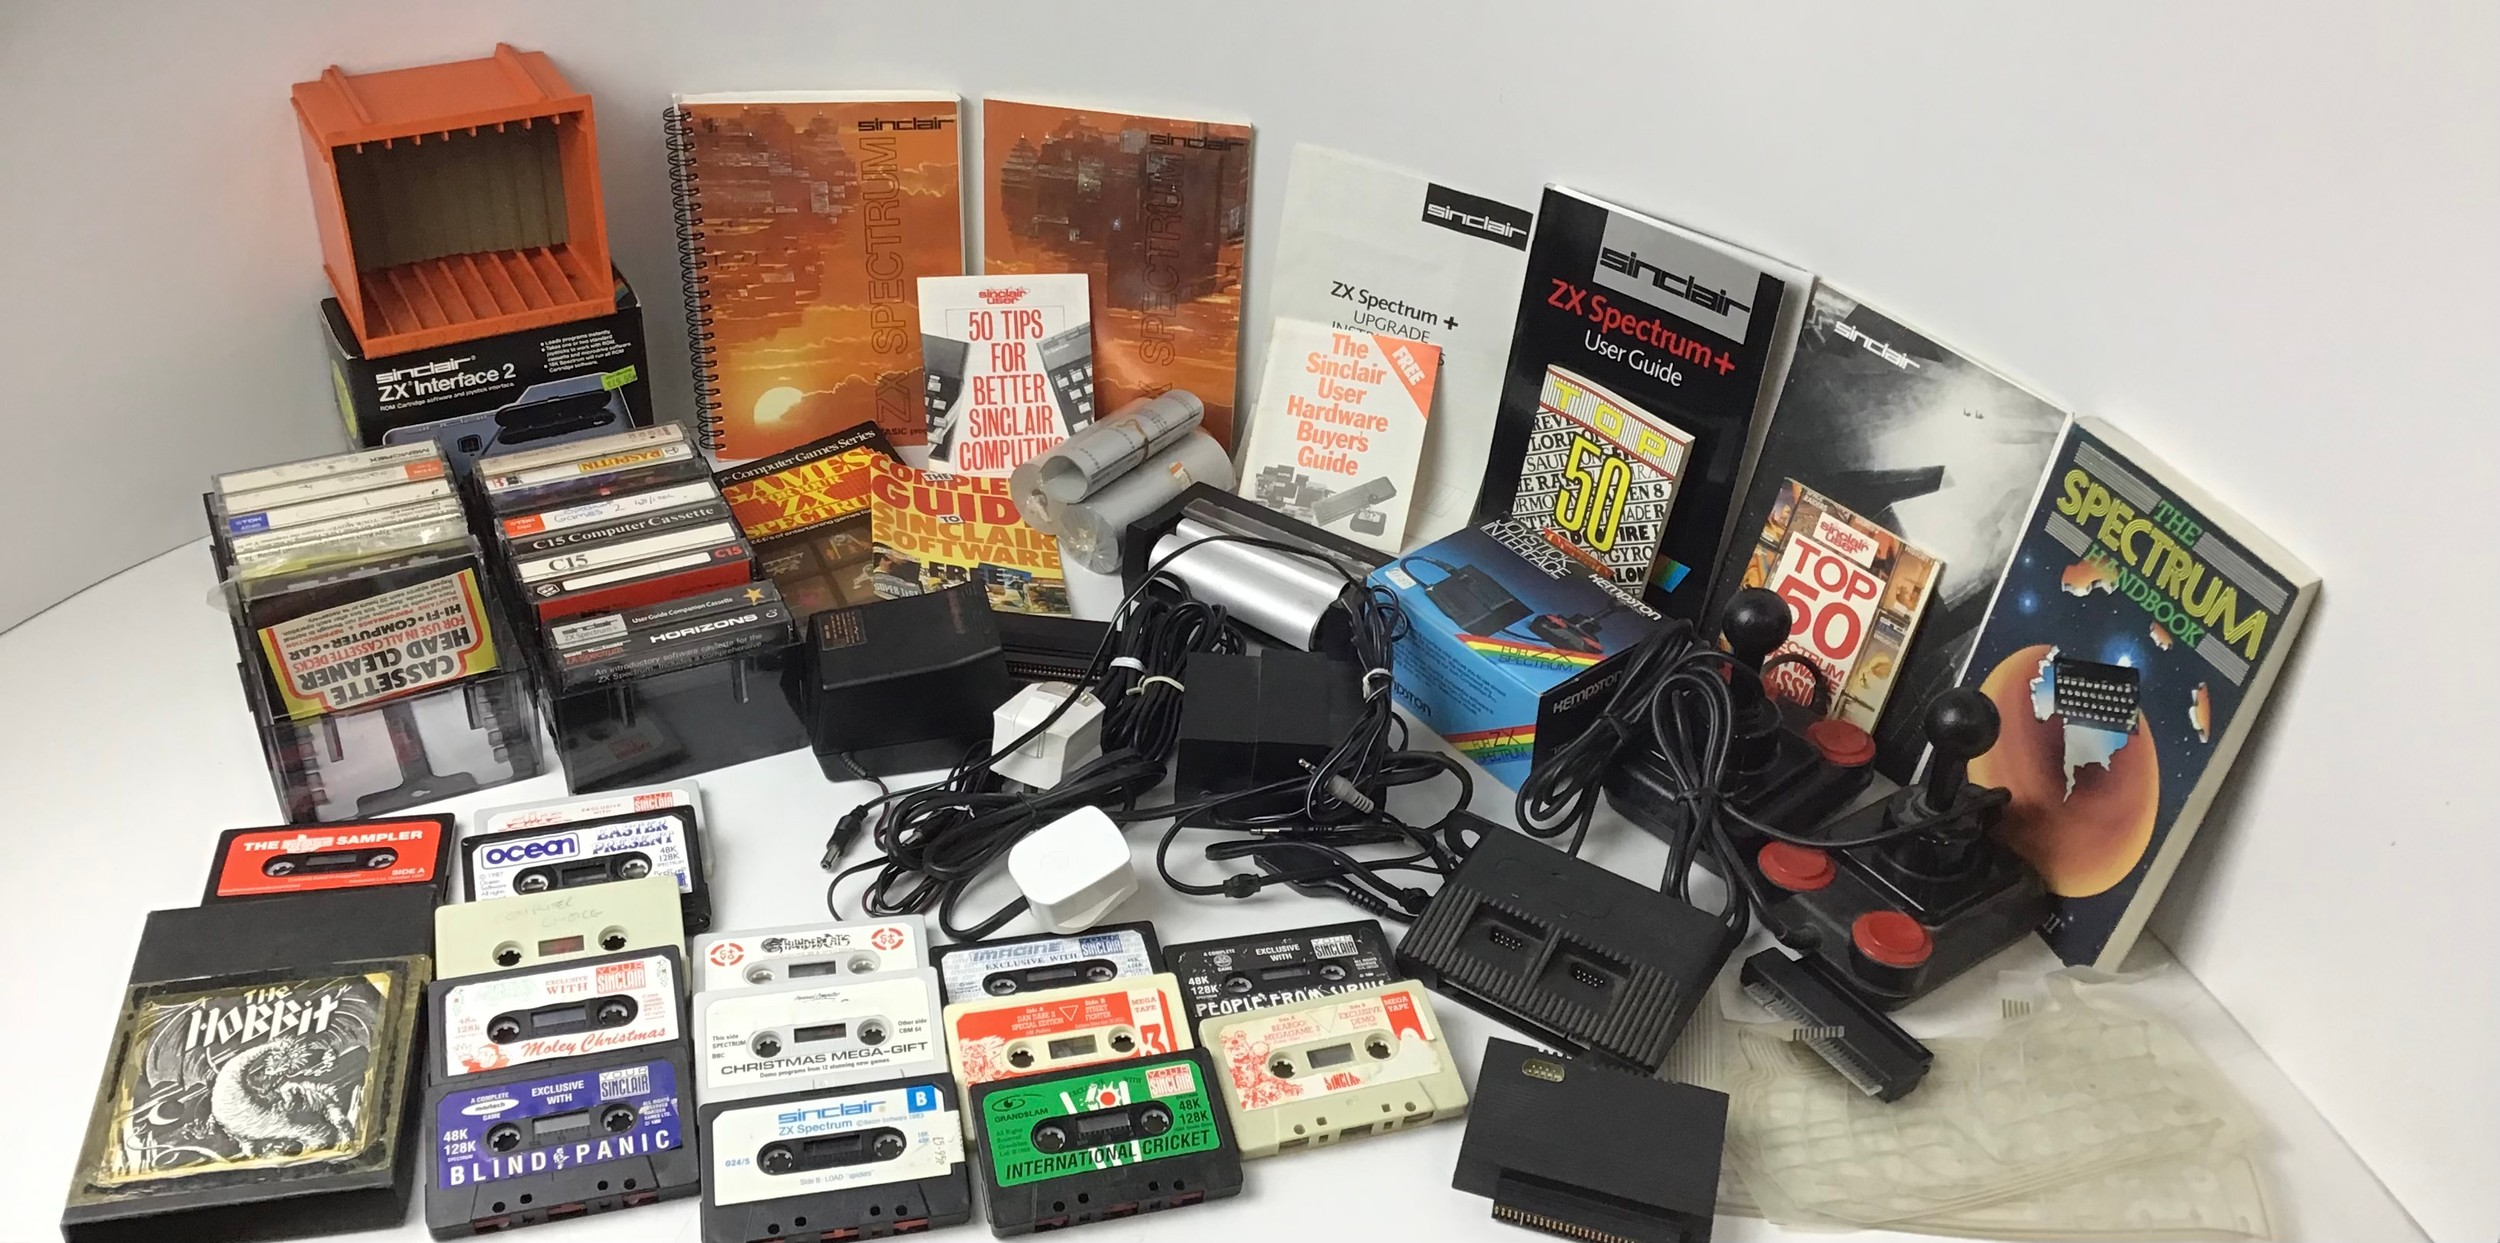 Collection of ZX Spectrum Accessories - Games, Printer, Joysticks and User Manuals etc